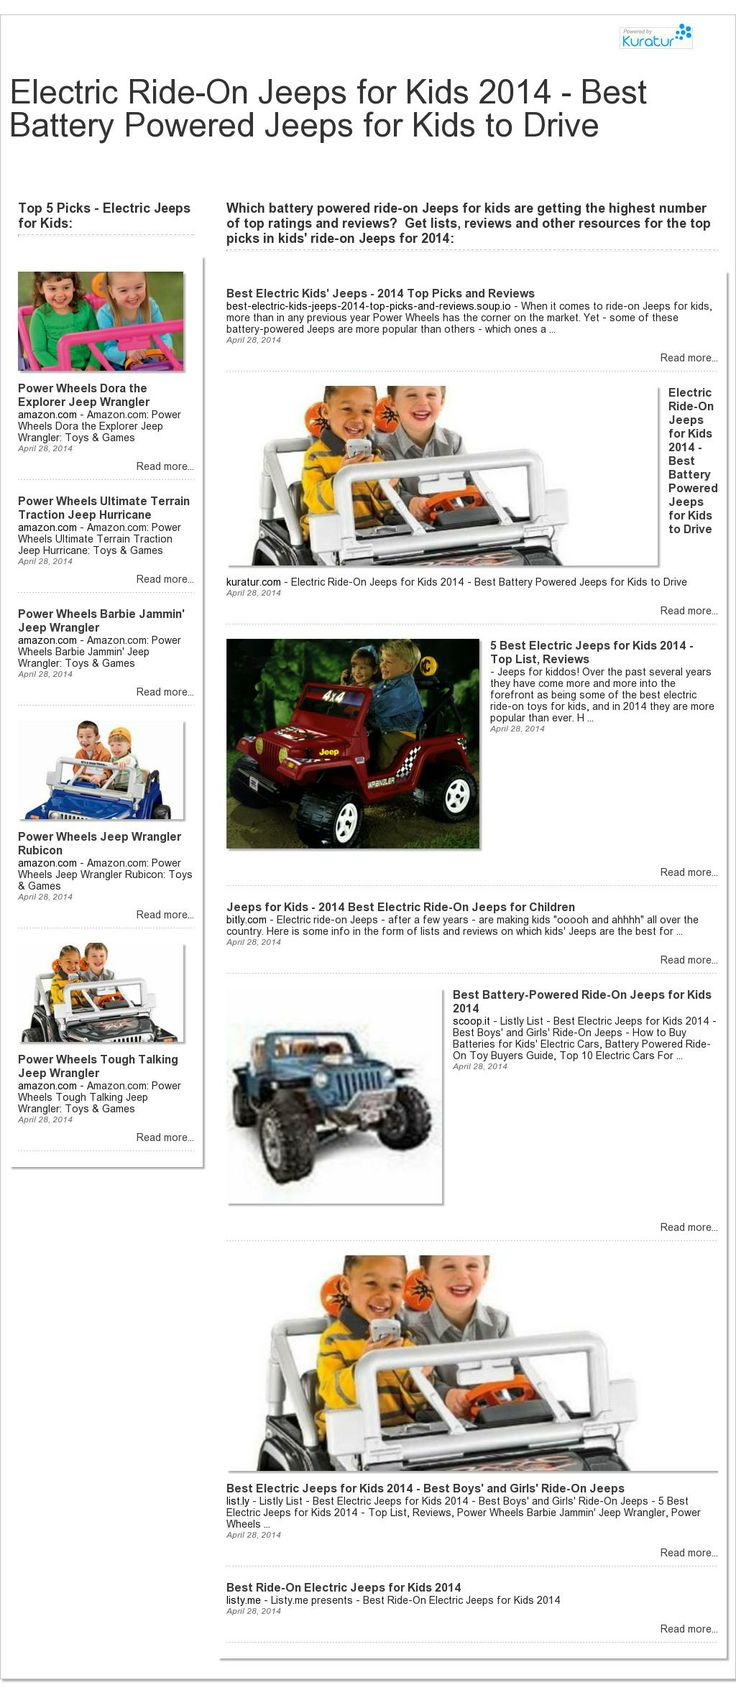 The website 'http://kuratur.com/Top10Store/electric-ride-on-jeeps-for-kids-2014-best-battery-powered-jeeps-for-kids-to-drive.html' courtesy of @Pinstamatic (http://pinstamatic.com)